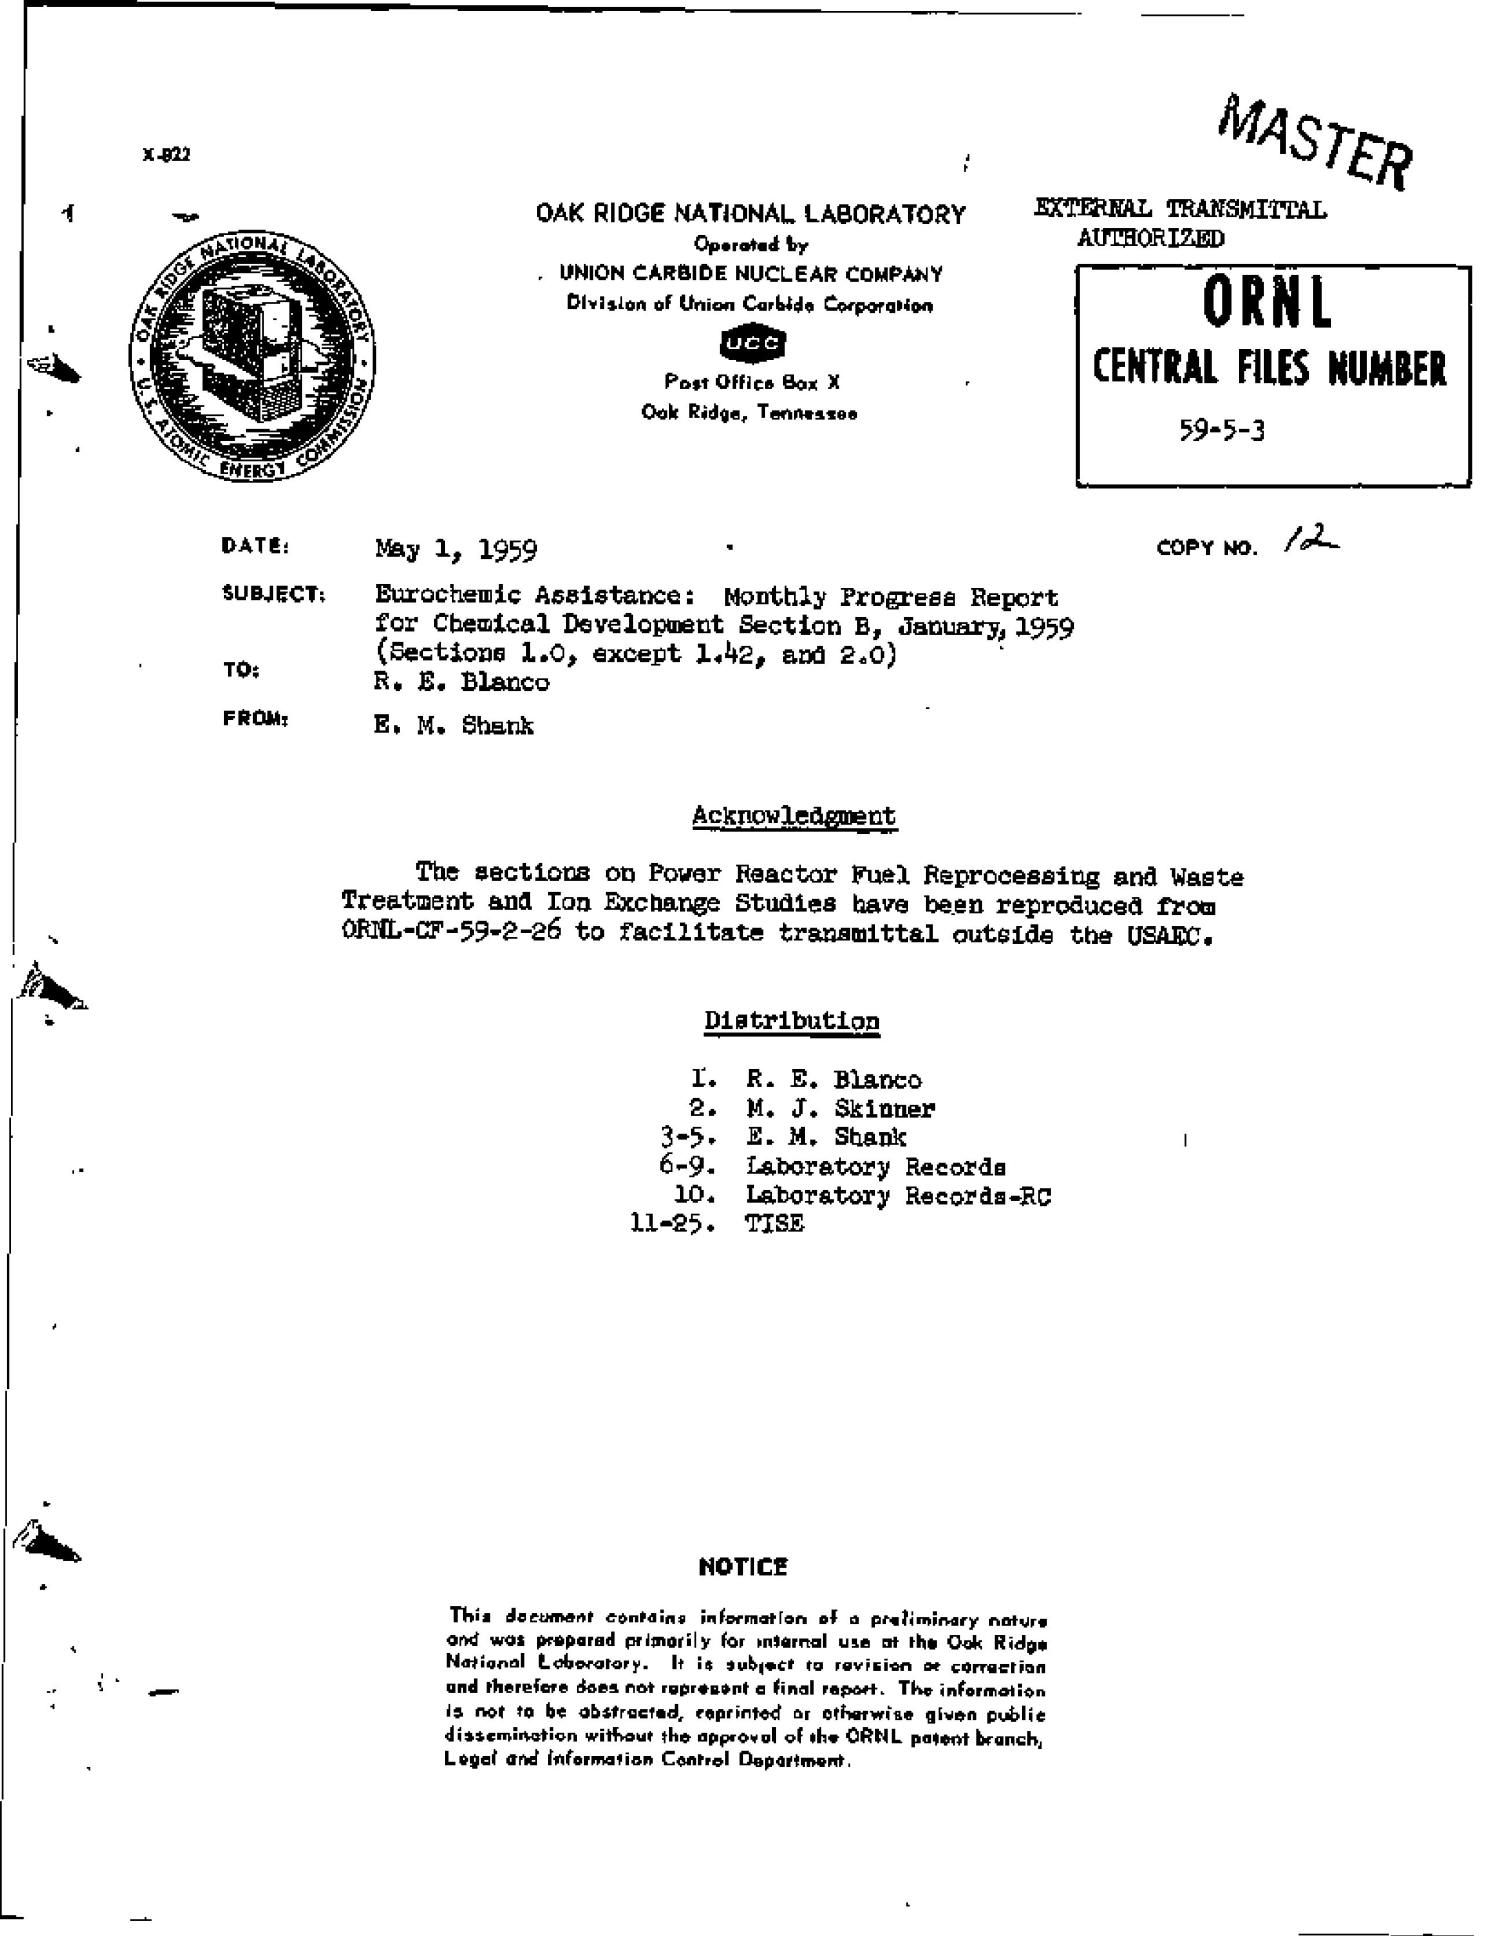 EUROCHEMIC ASSISTANCE: MONTHLY PROGRESS REPORT FOR CHEMICAL DEVELOPMENT SECTION B, JANUARY 1959. (SECTIONS 1.0, EXCEPT 1.42, AND 2.0)                                                                                                      [Sequence #]: 1 of 29